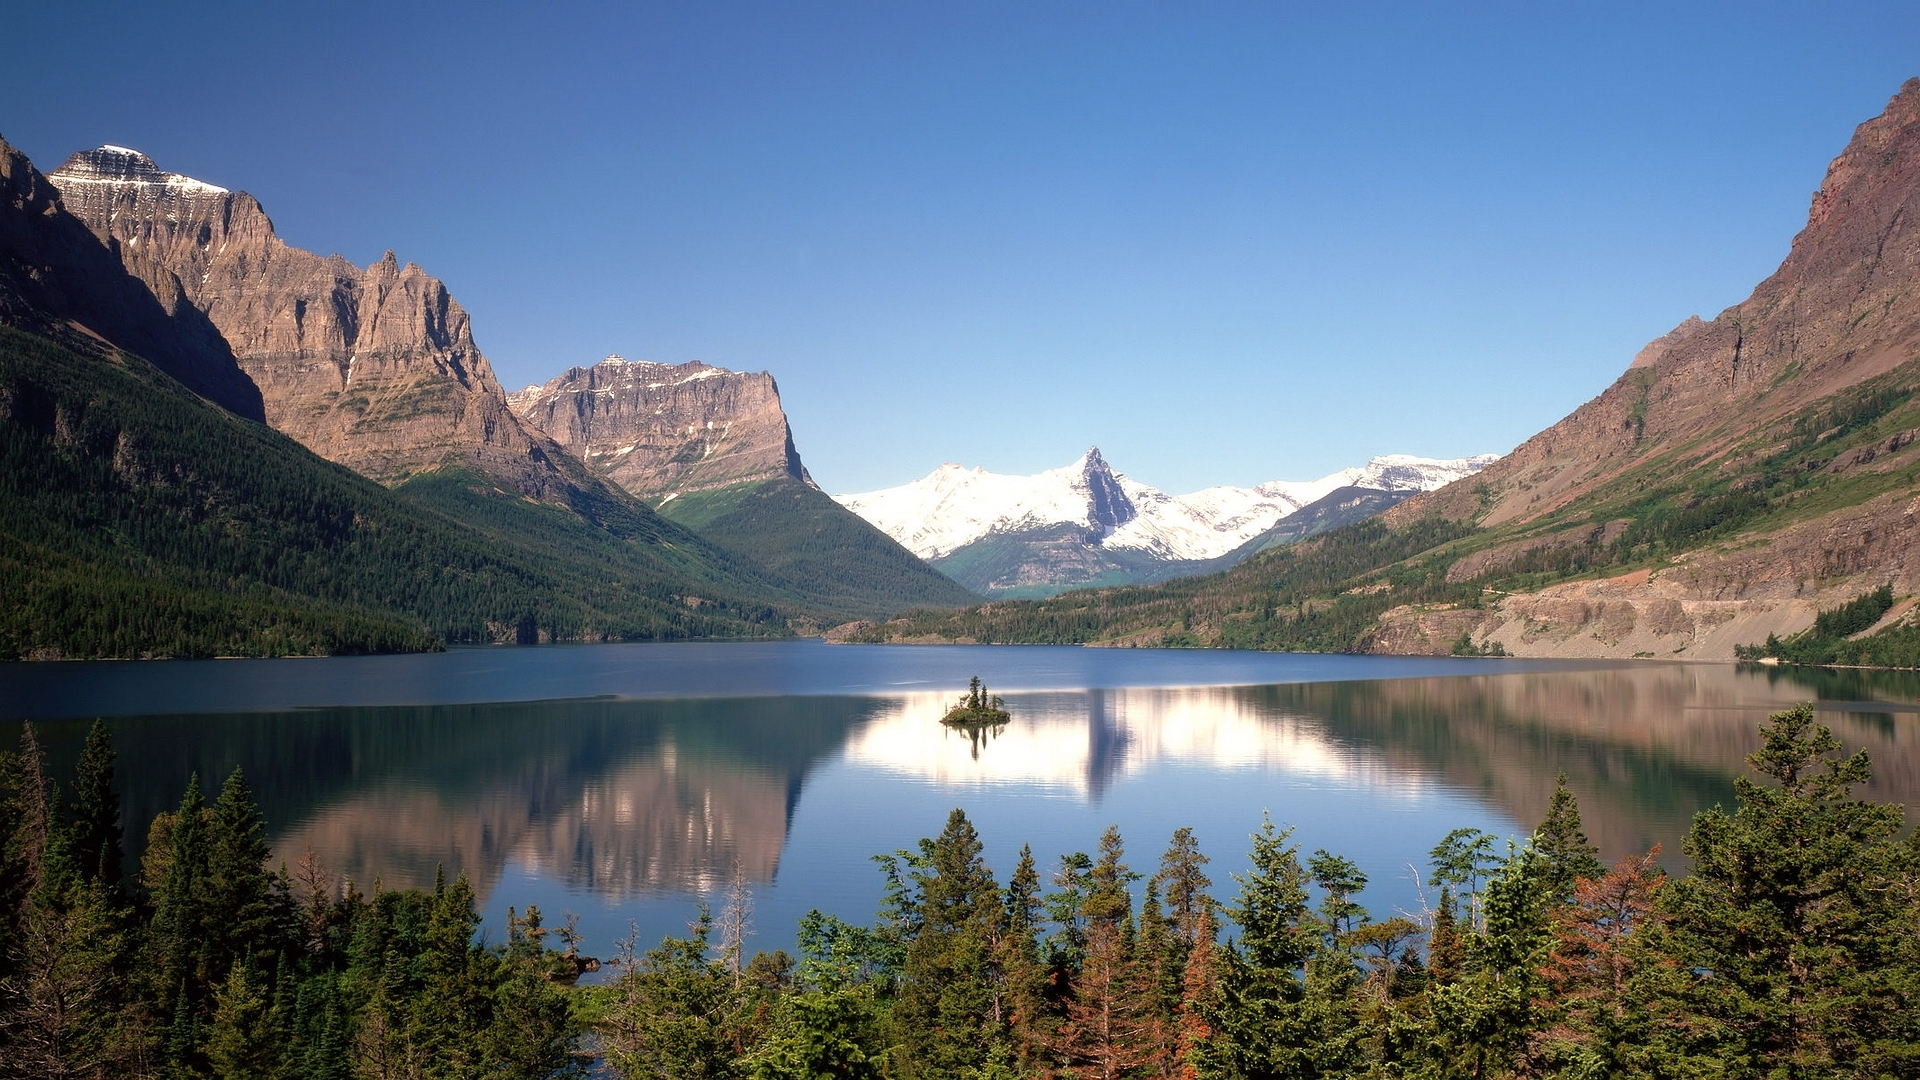 47479 download wallpaper Landscape, Nature, Mountains, Lakes screensavers and pictures for free